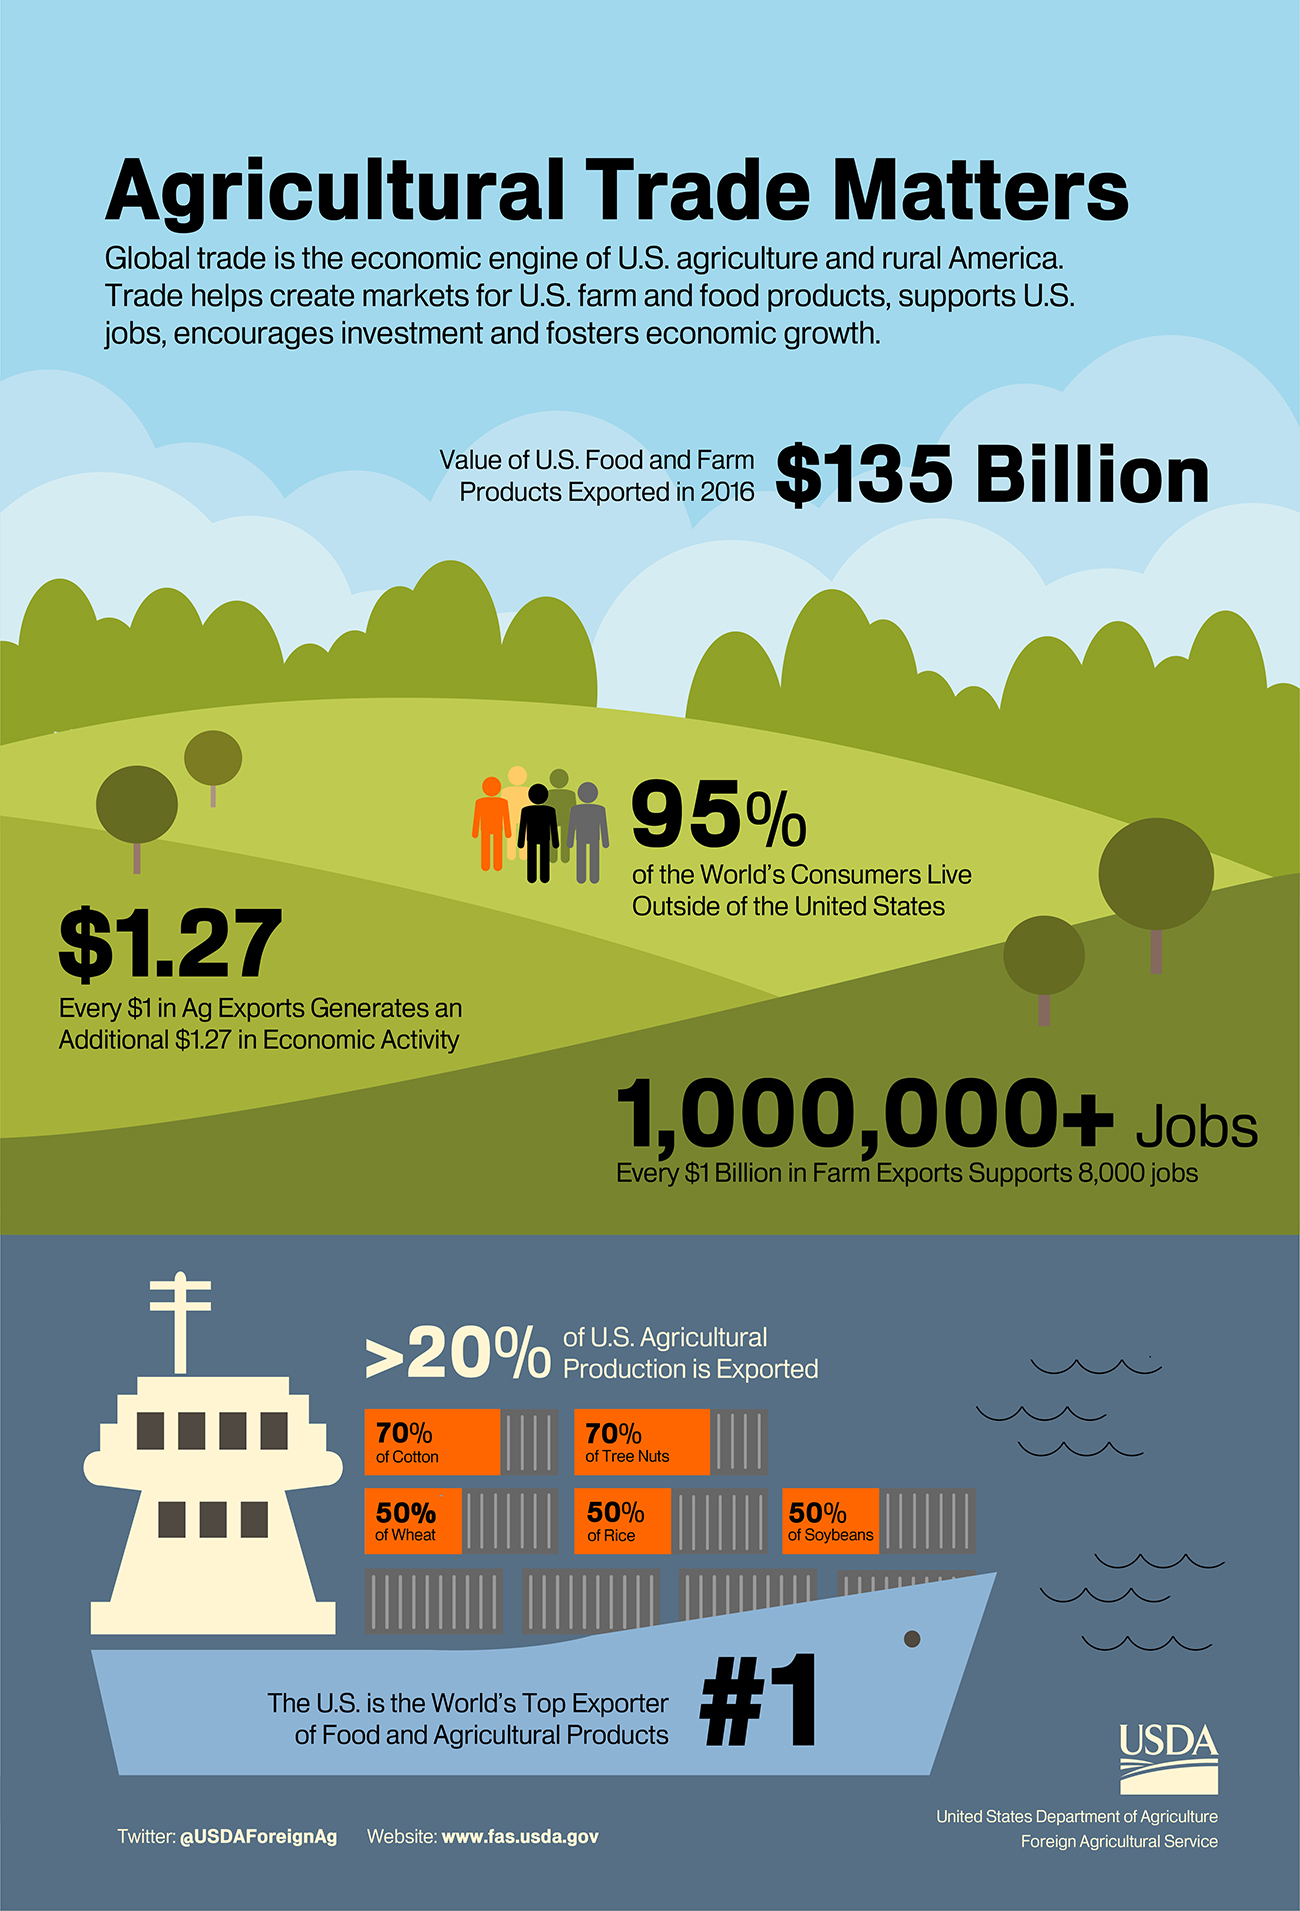 Infographic showing highlights of U.S. agricultural trade, including it